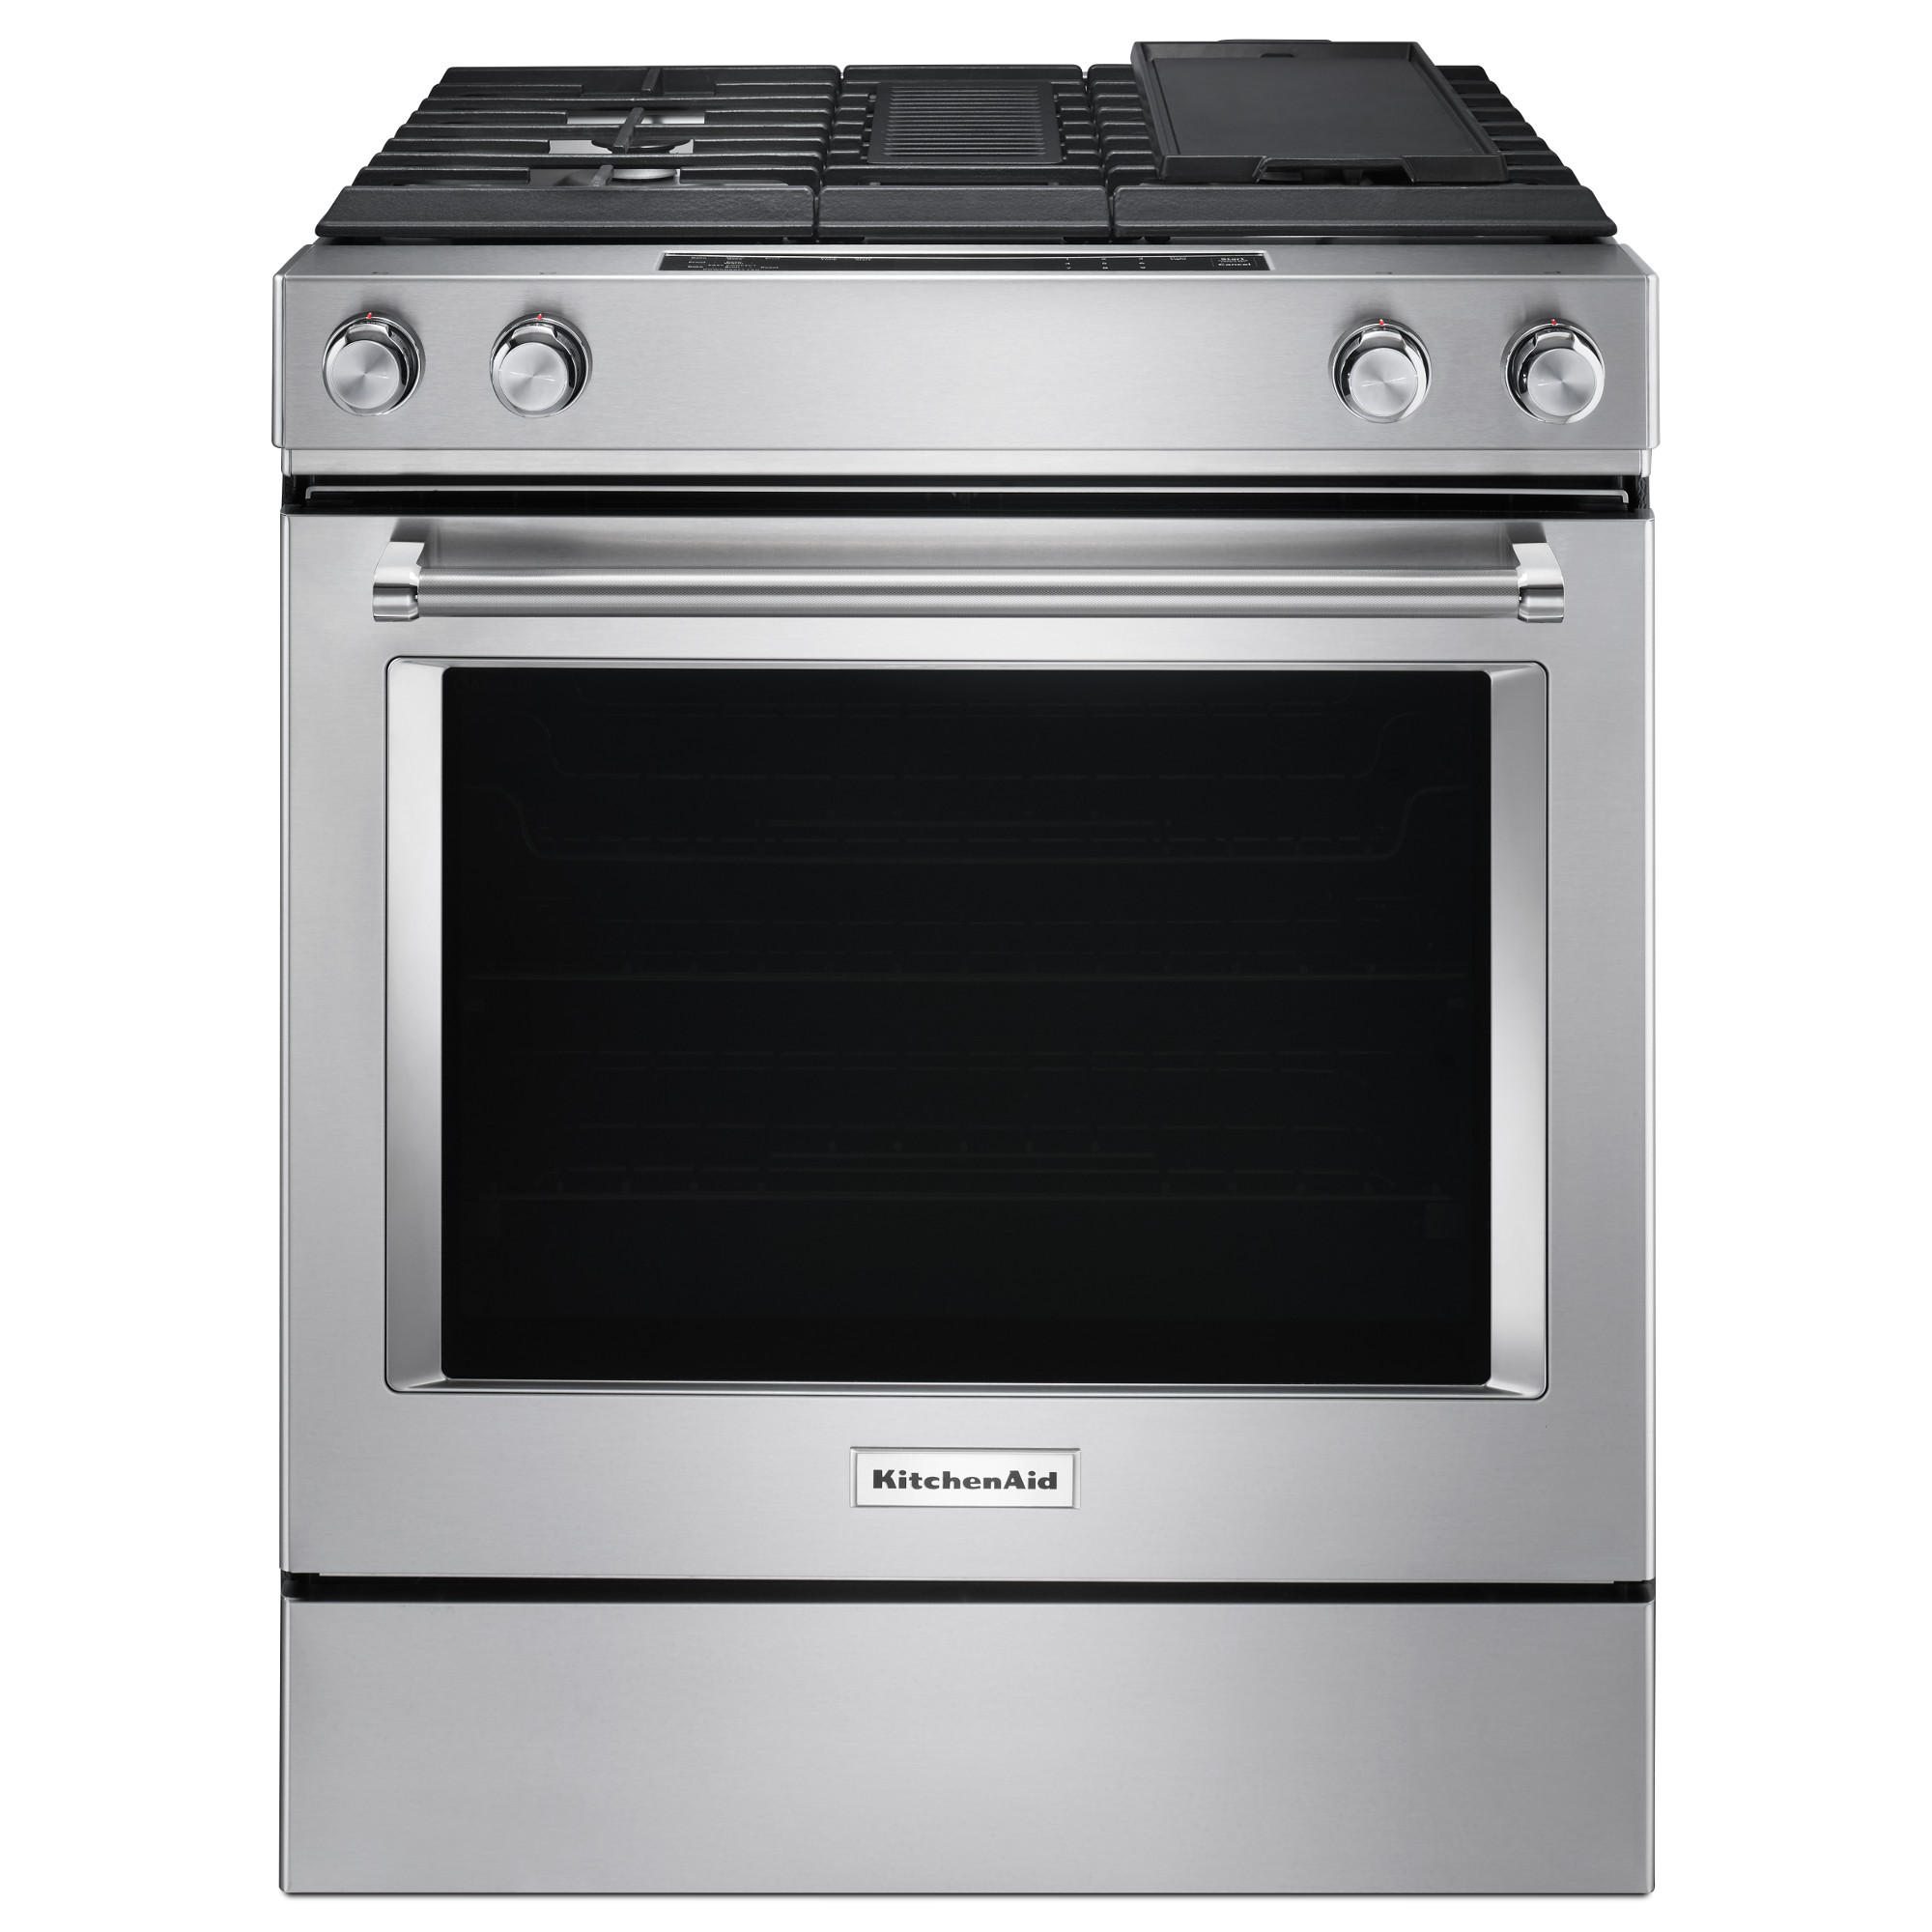 KitchenAid 6.4 cu. ft. 4-Burner Downdraft Dual Fuel Range - Stainless Steel